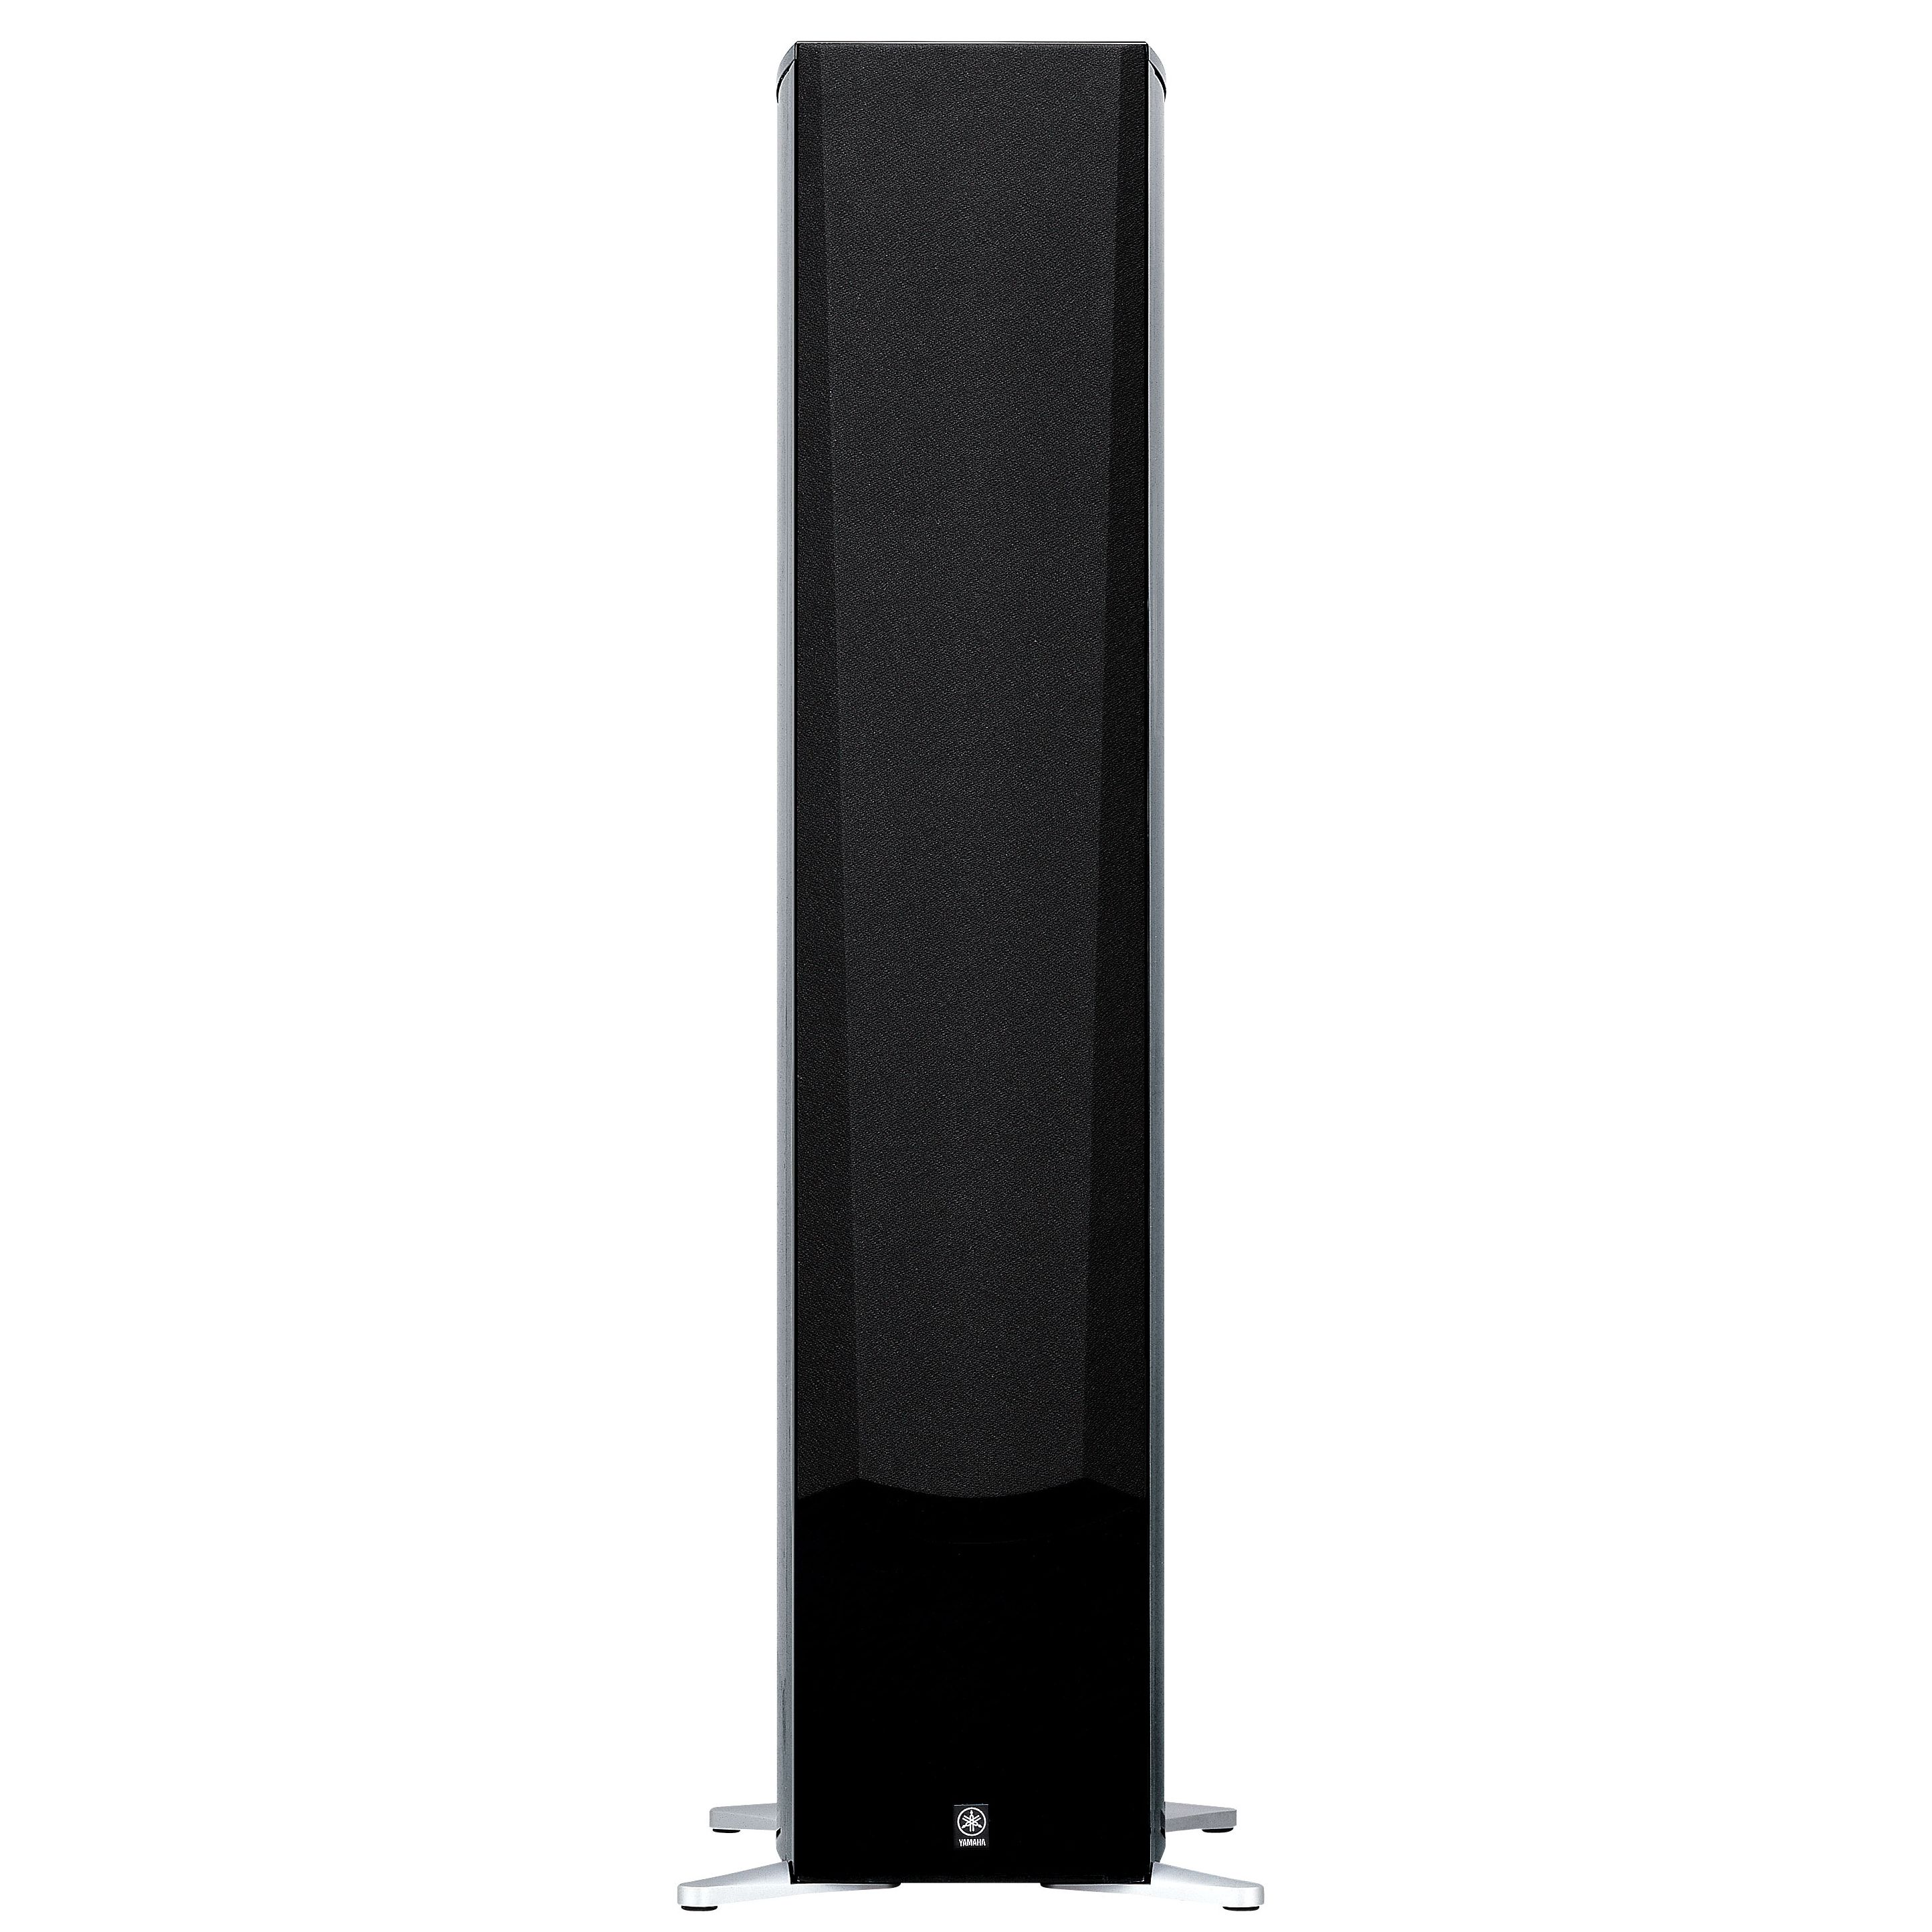 Ns 555 Features Yamaha United States Speakers Diagram Further Bi Wire Speaker Cable On Wiring Floor Standing Home Theater